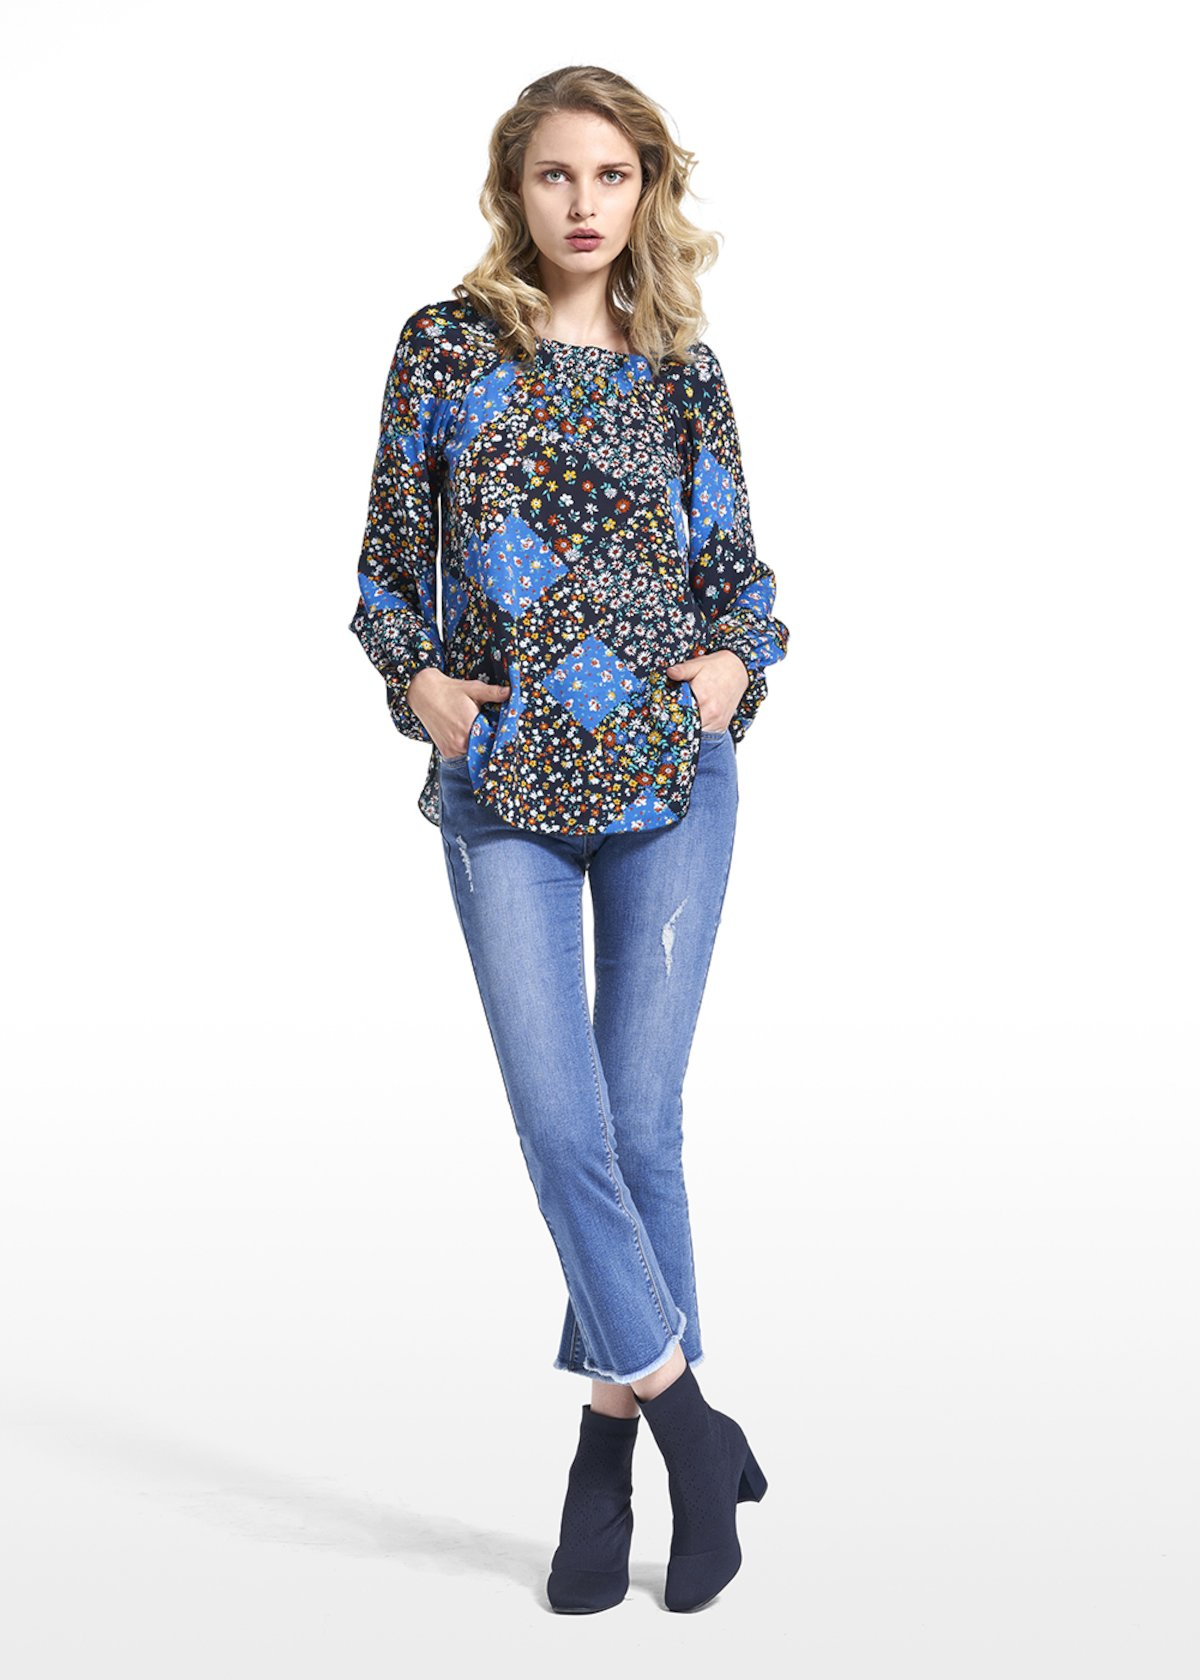 Blouse Cristina patterned covent garden with gathering on the neckline - Blue / Avion Fantasia - Woman